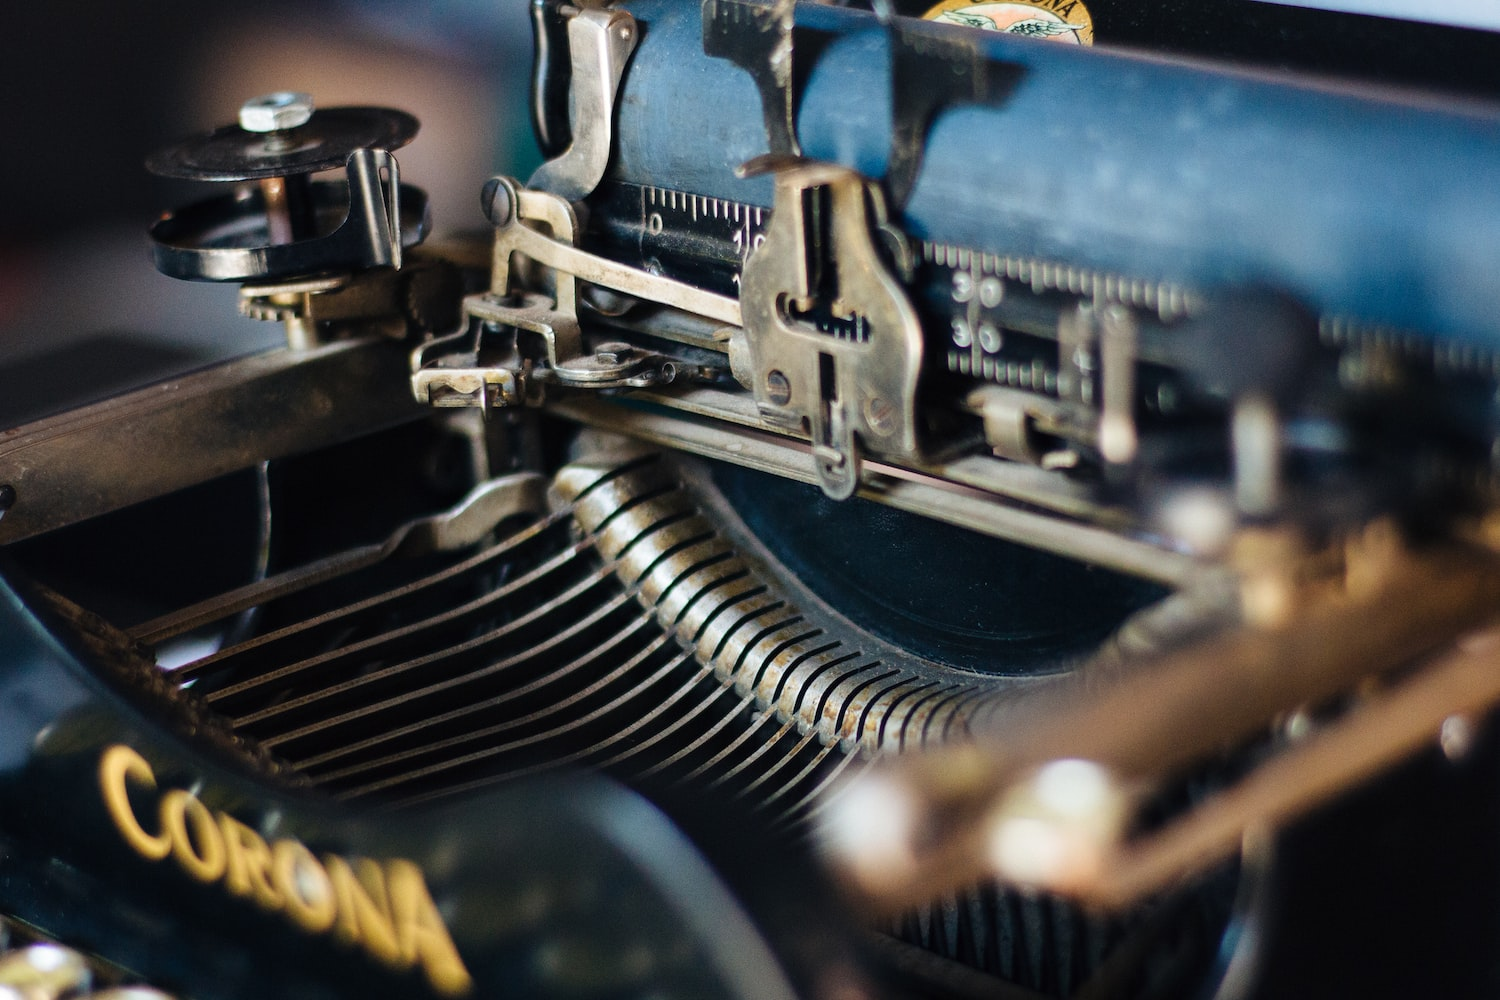 Image focusing the parts the old typing machine